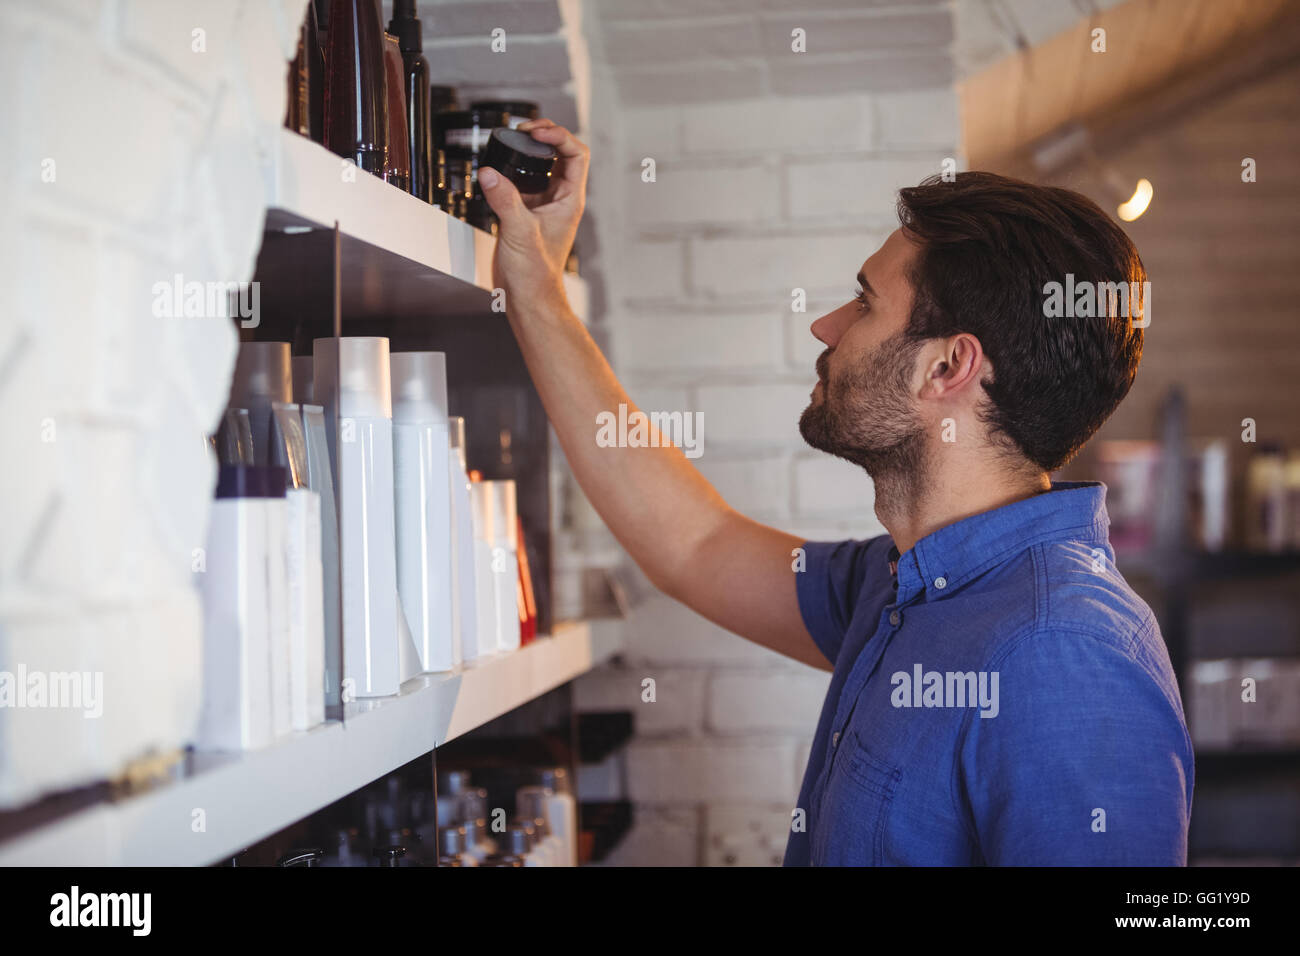 Male hair dresser selecting gel from shelf - Stock Image